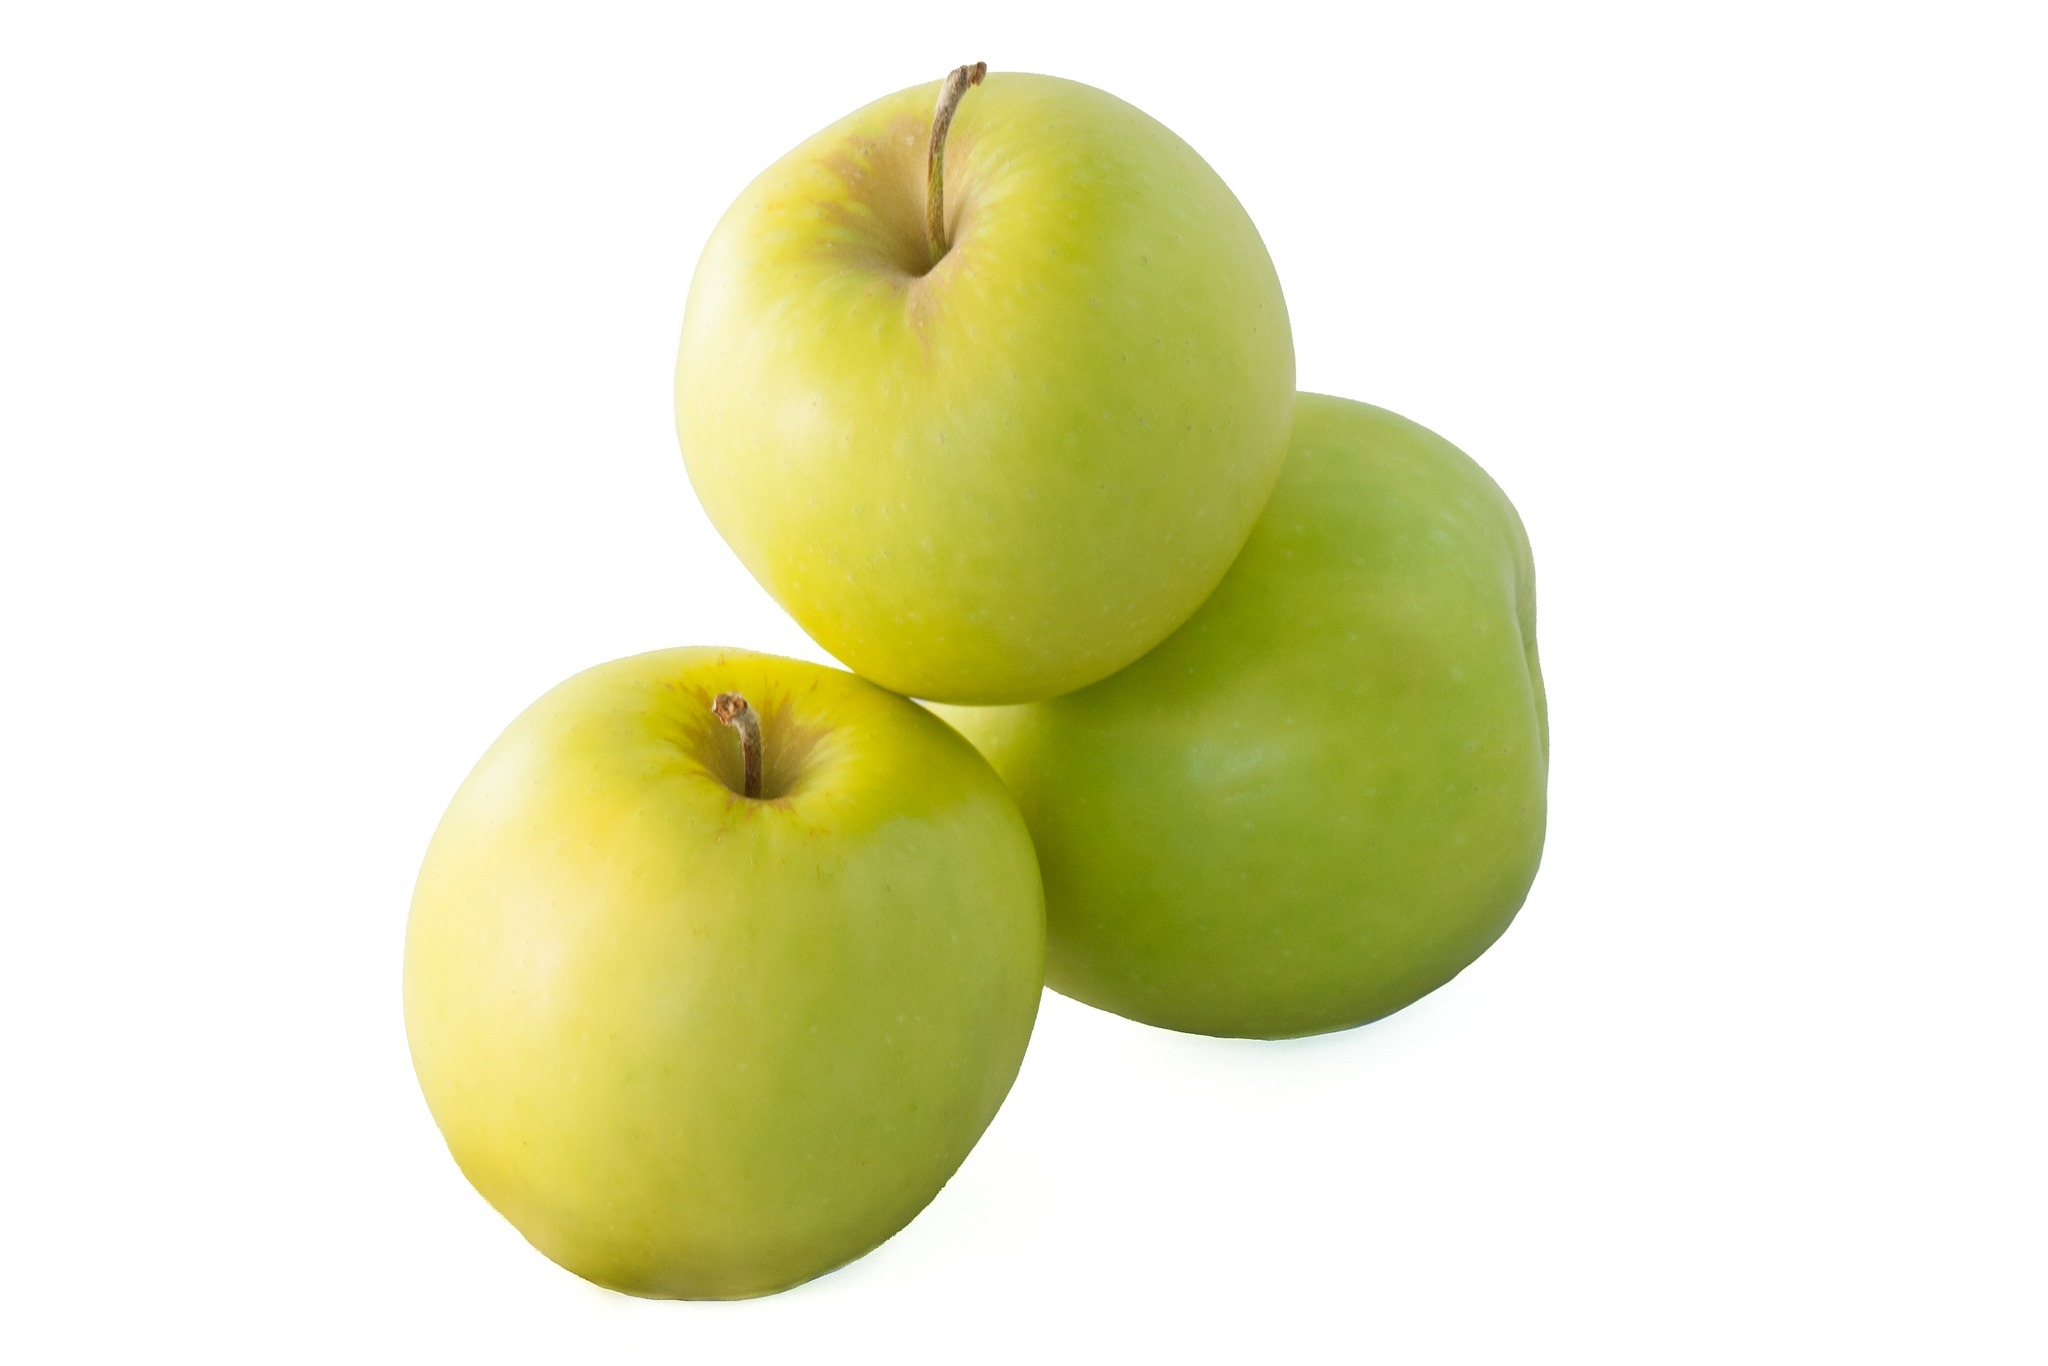 apple-plant-fruit-sweet-food-green-produce-fresh-fruits-apples-liqueur-flowering-plant-rose-family-cut-out-granny-smith-on-a-white-background-land-pla